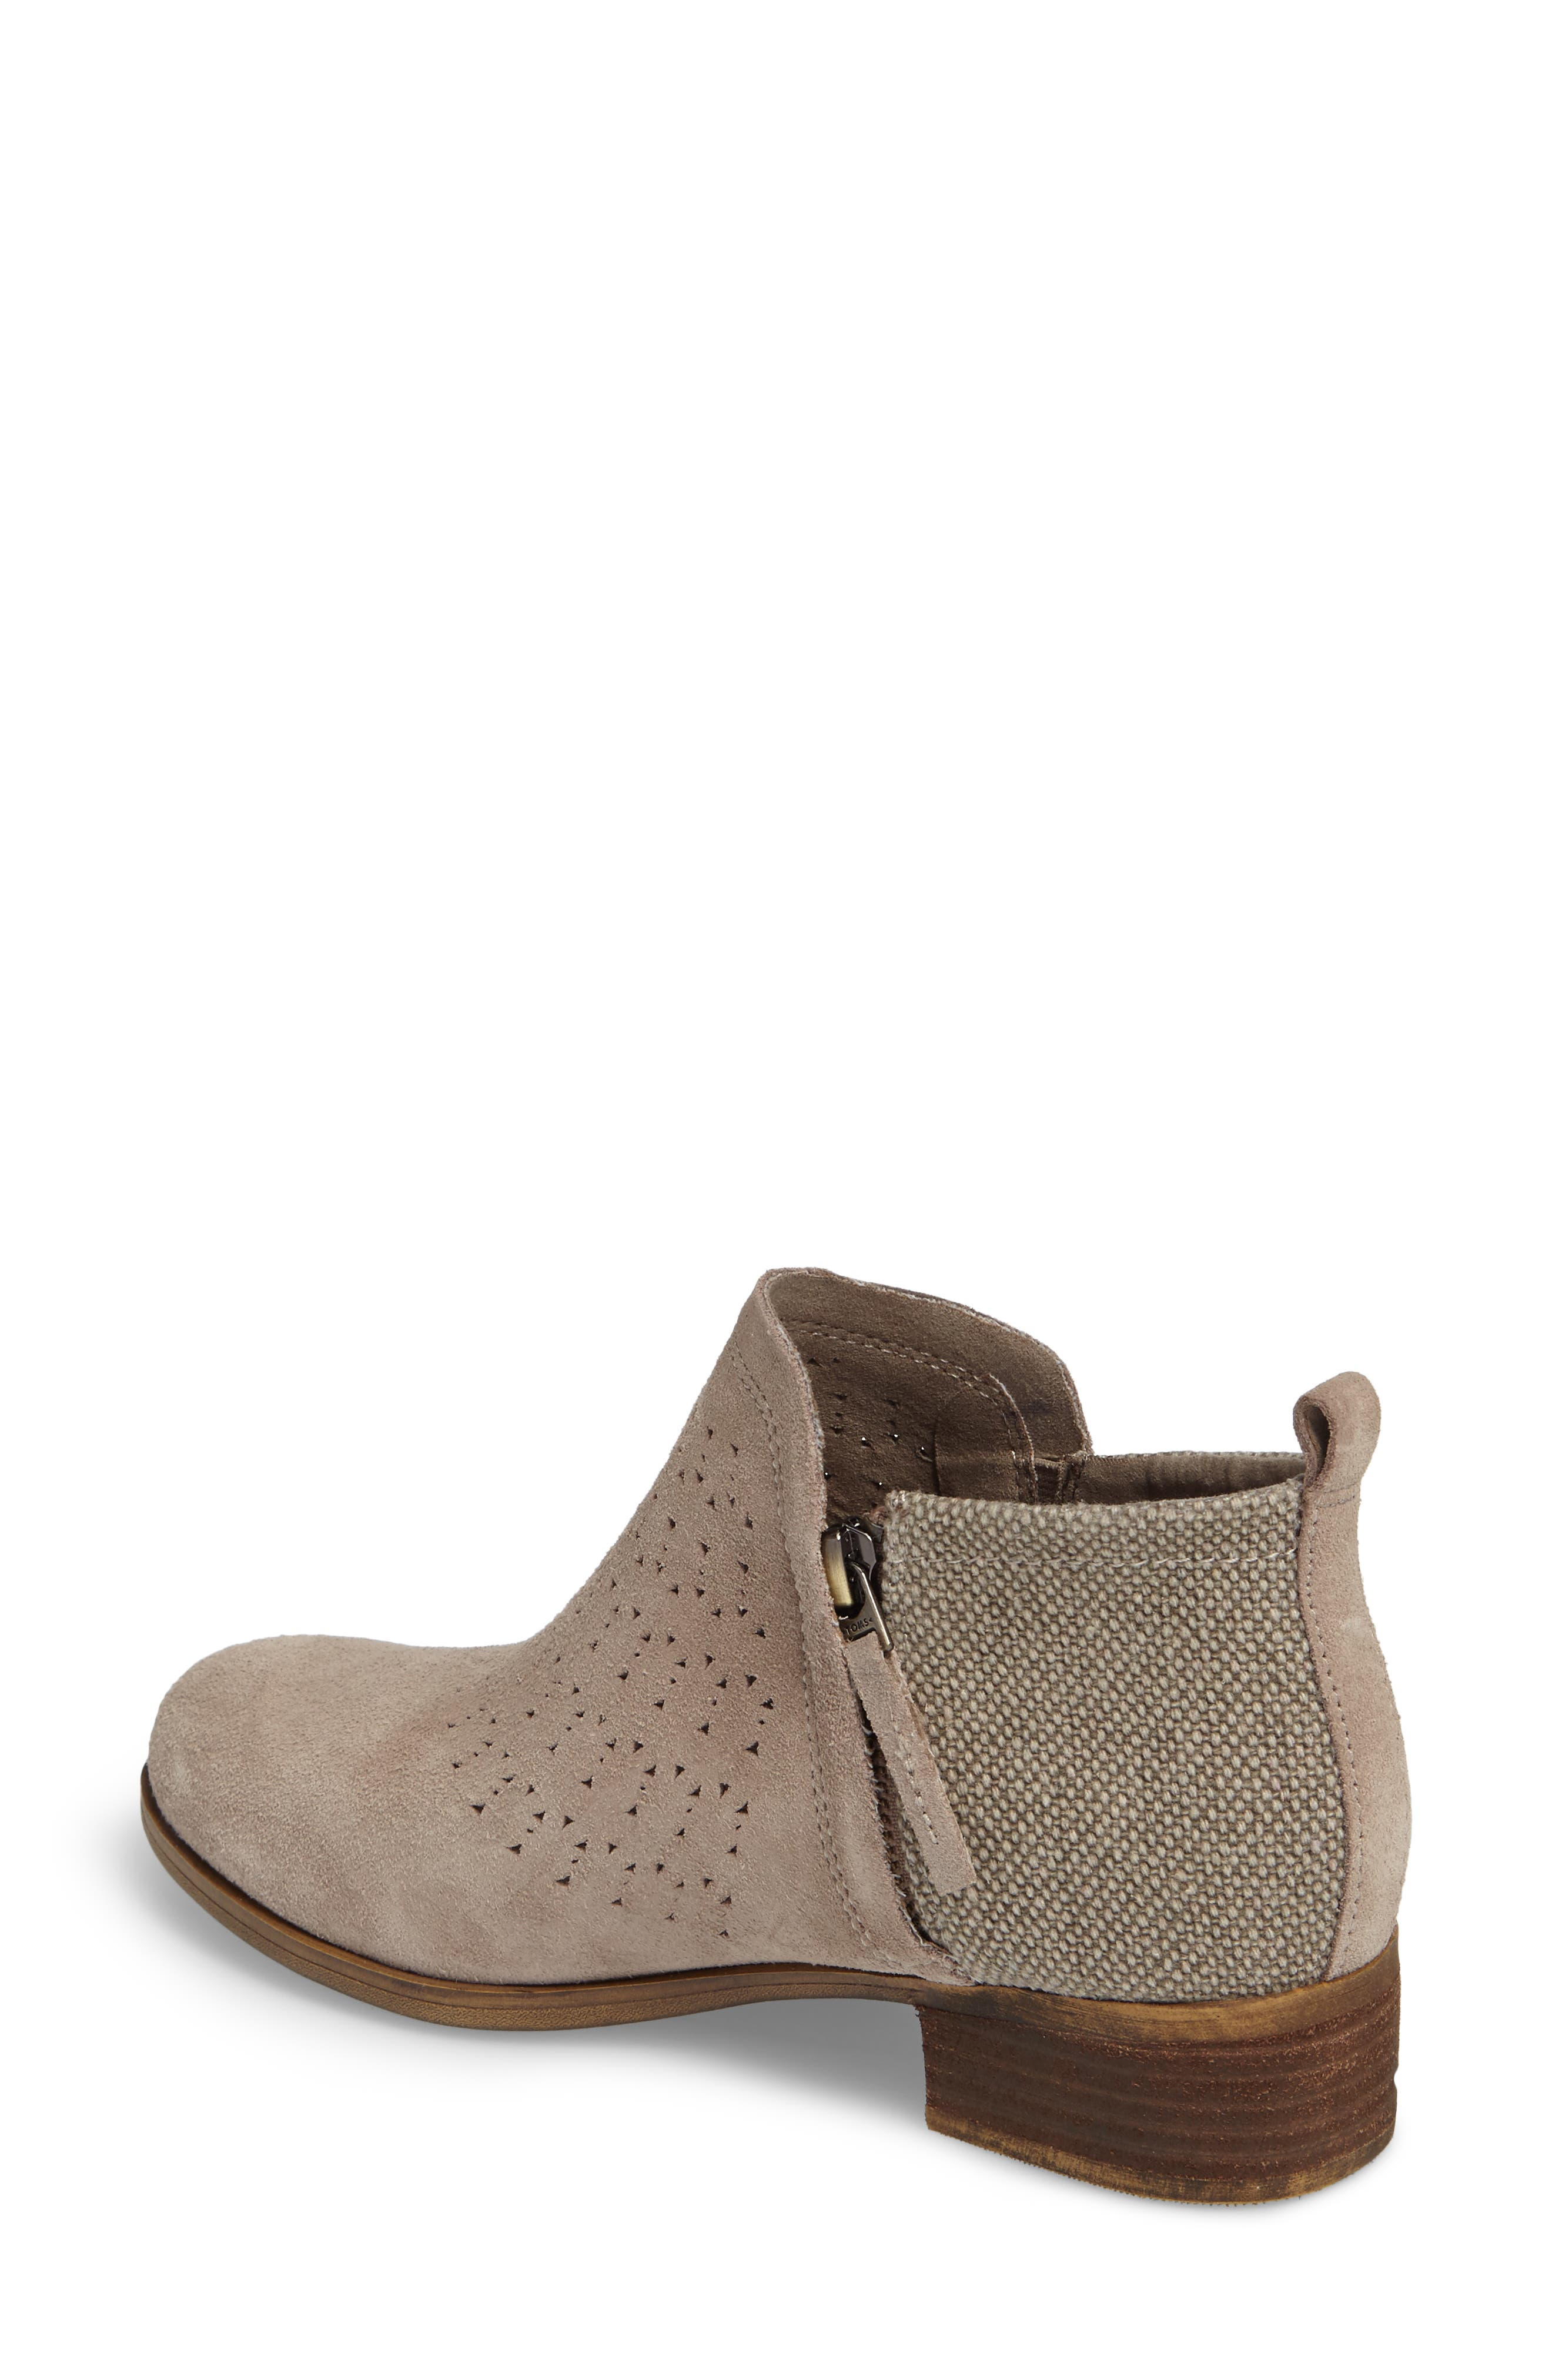 Deia Zip Bootie,                             Alternate thumbnail 16, color,